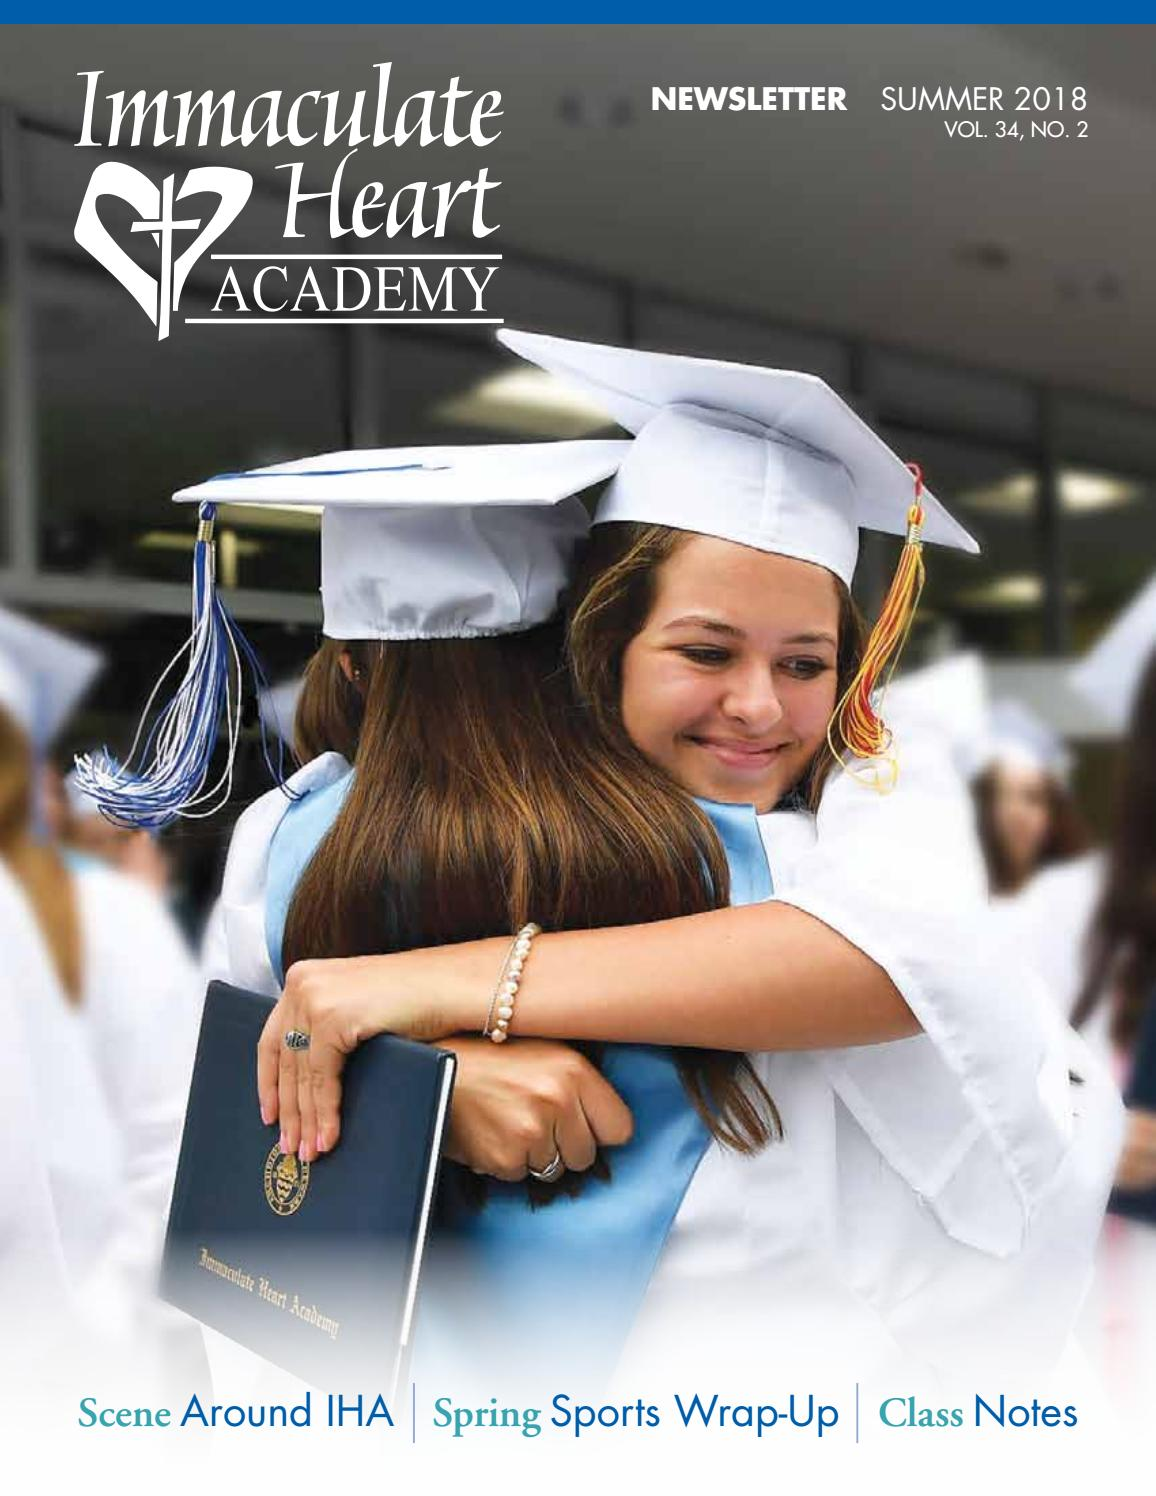 Lena Küchenmeister Summer 2018 Newsletter By Immaculate Heart Academy Issuu